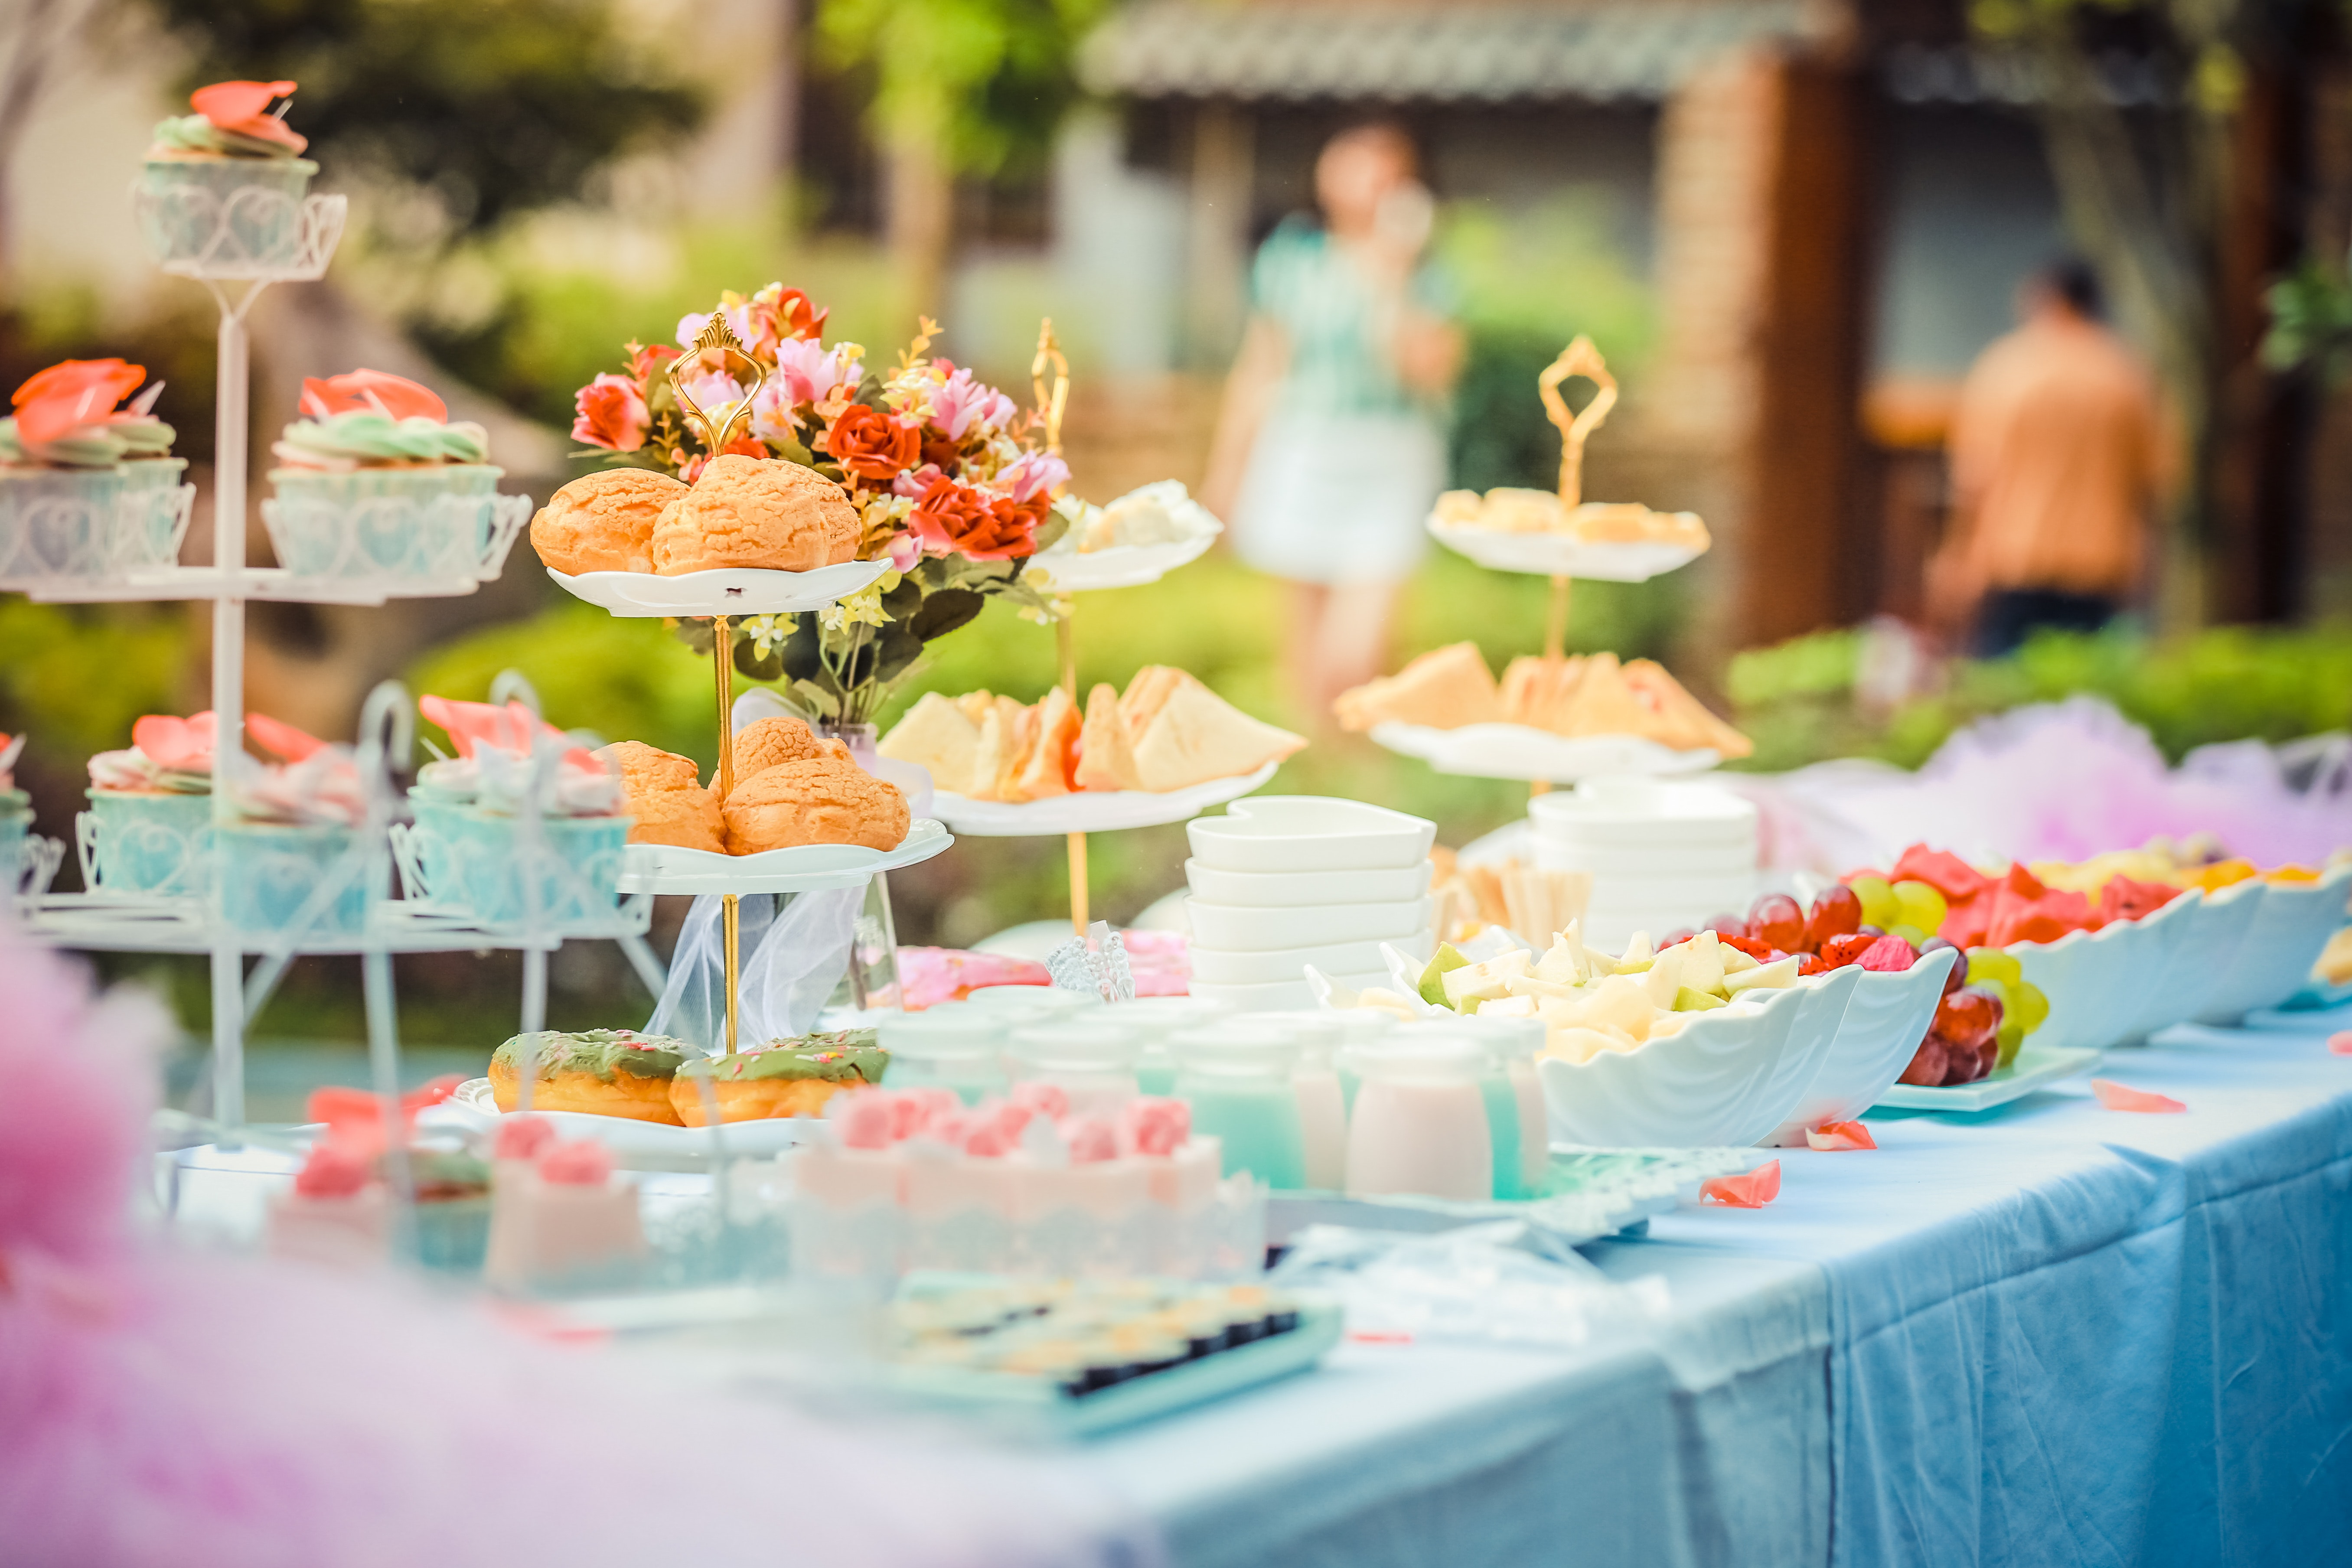 Your Complete Guide to throw a Baby Shower #babyshower #babyshowerideas